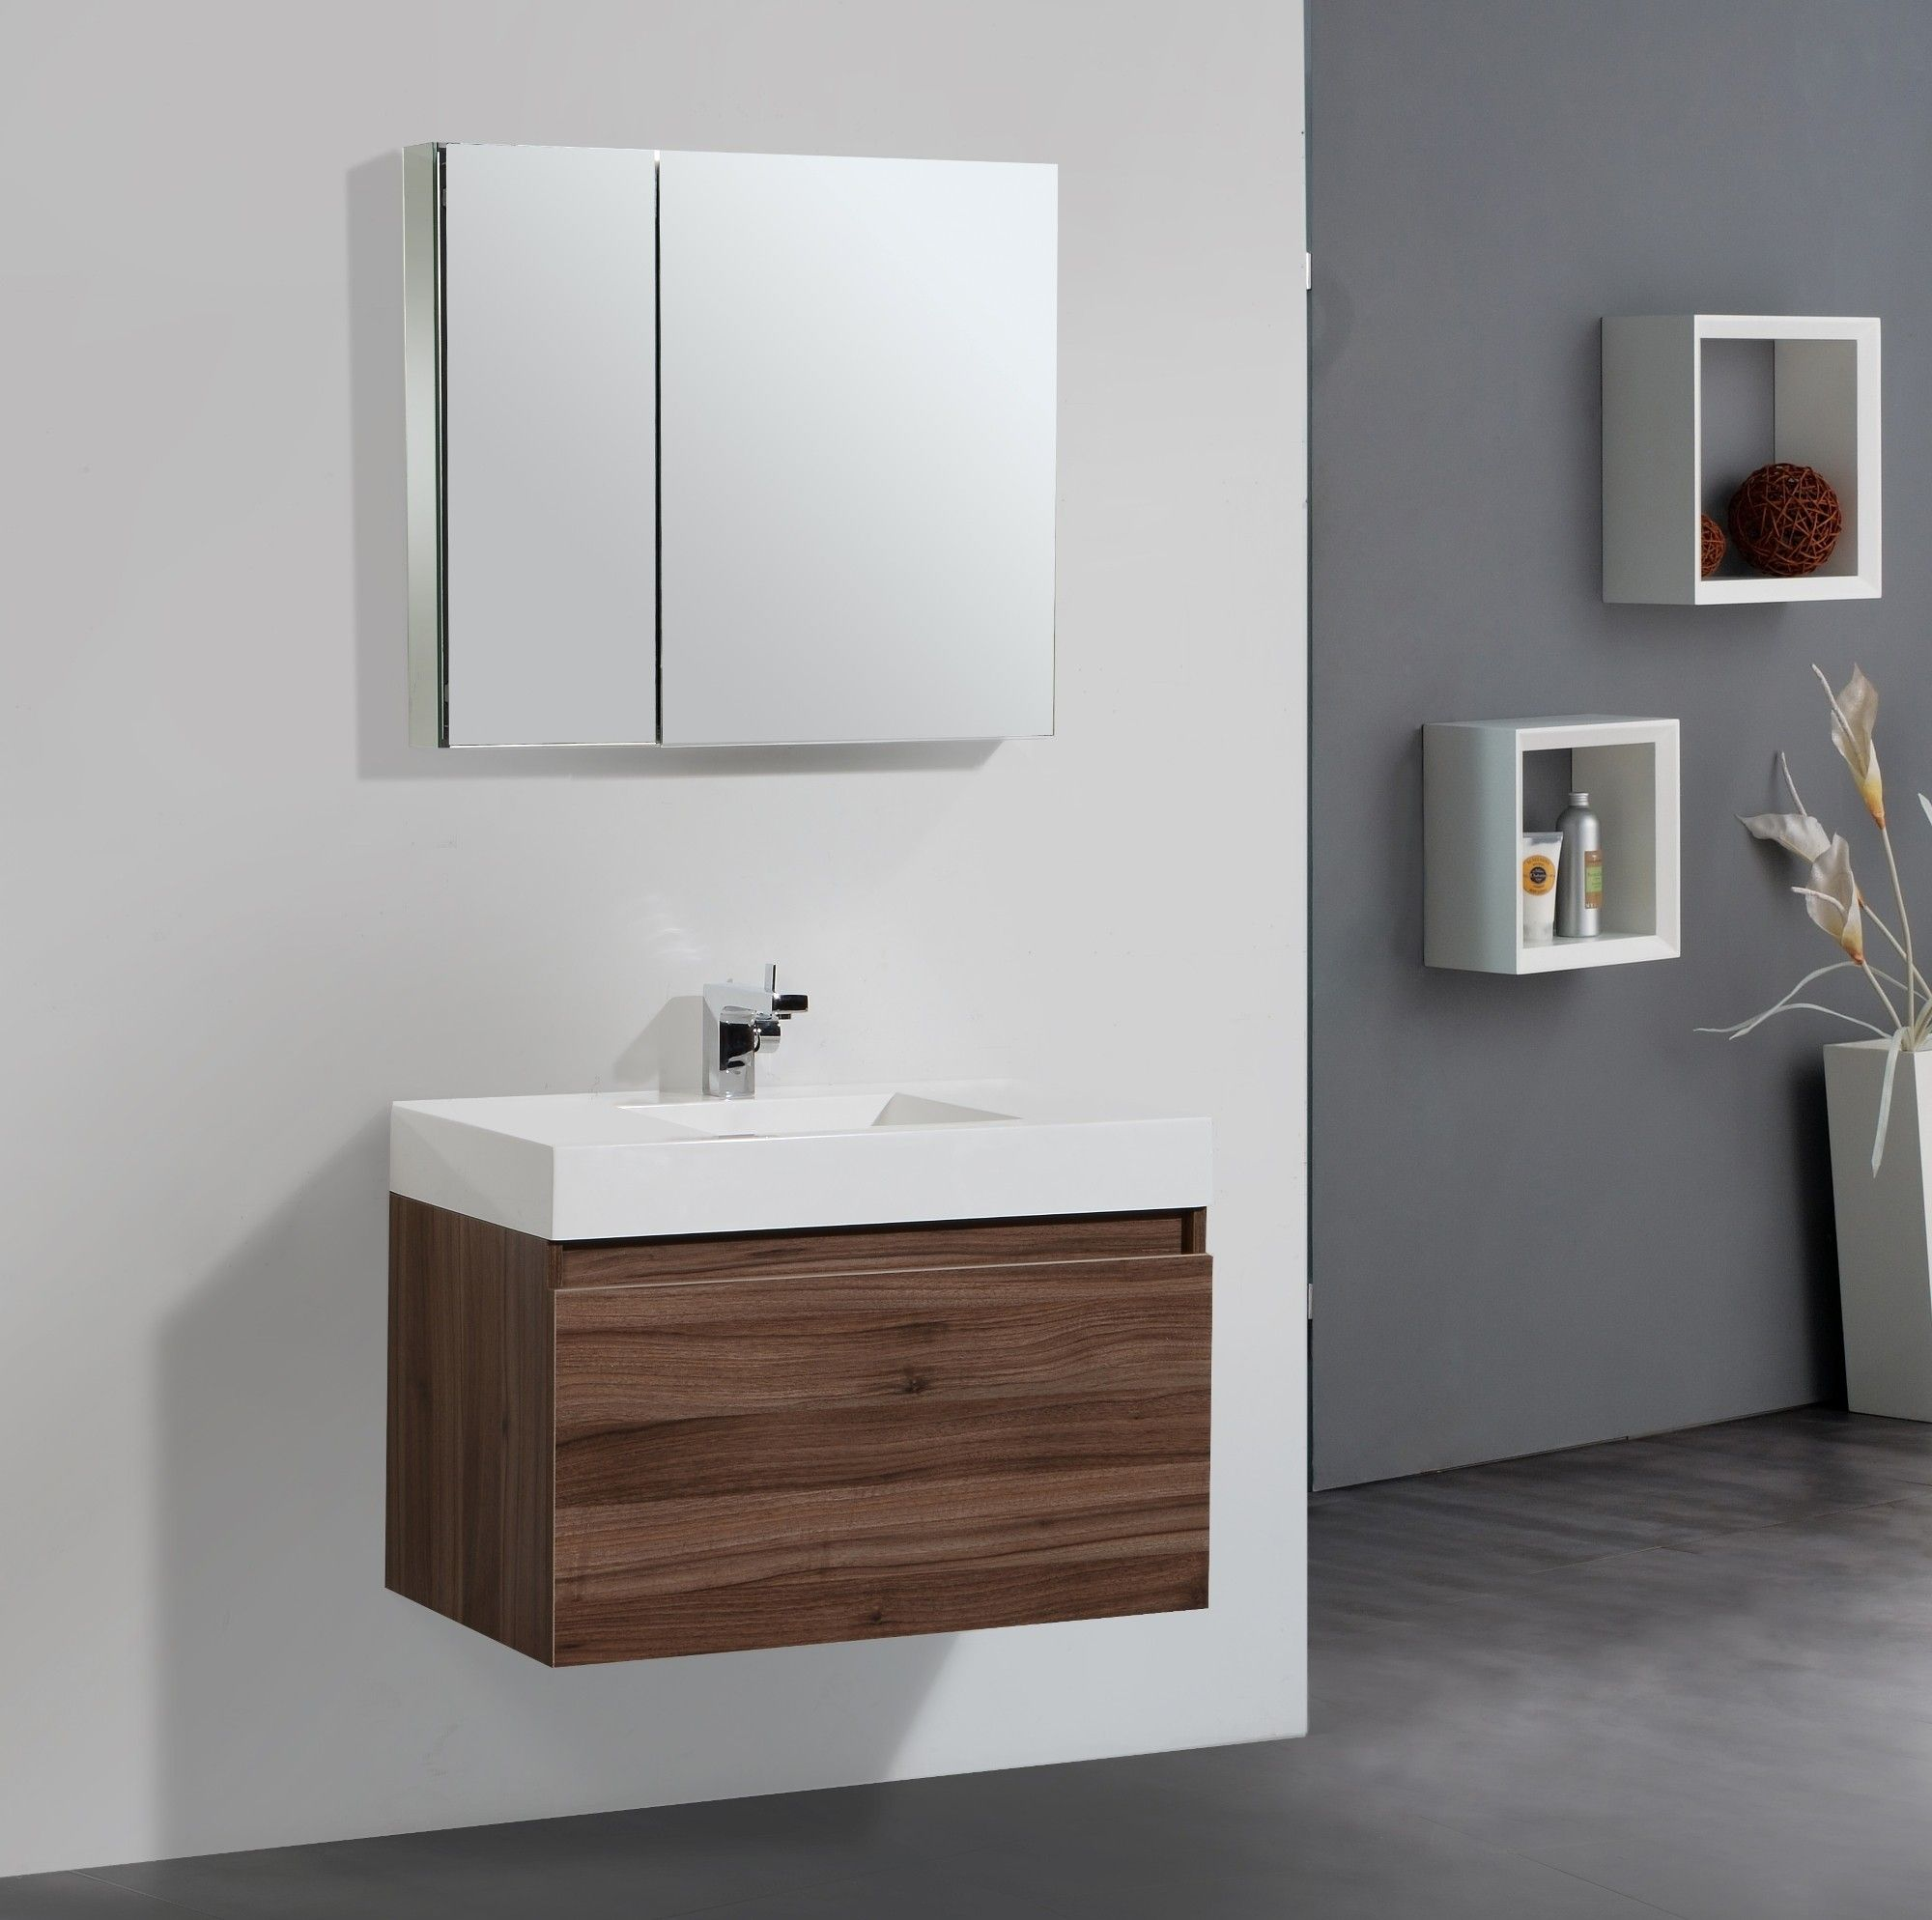 Modern bathroom decor accessories - Fantastic Small Bathroom Mirror Over Floating Walnut Small Vanity Single Sink Panels As Decorate In Gray Bathroom Designs